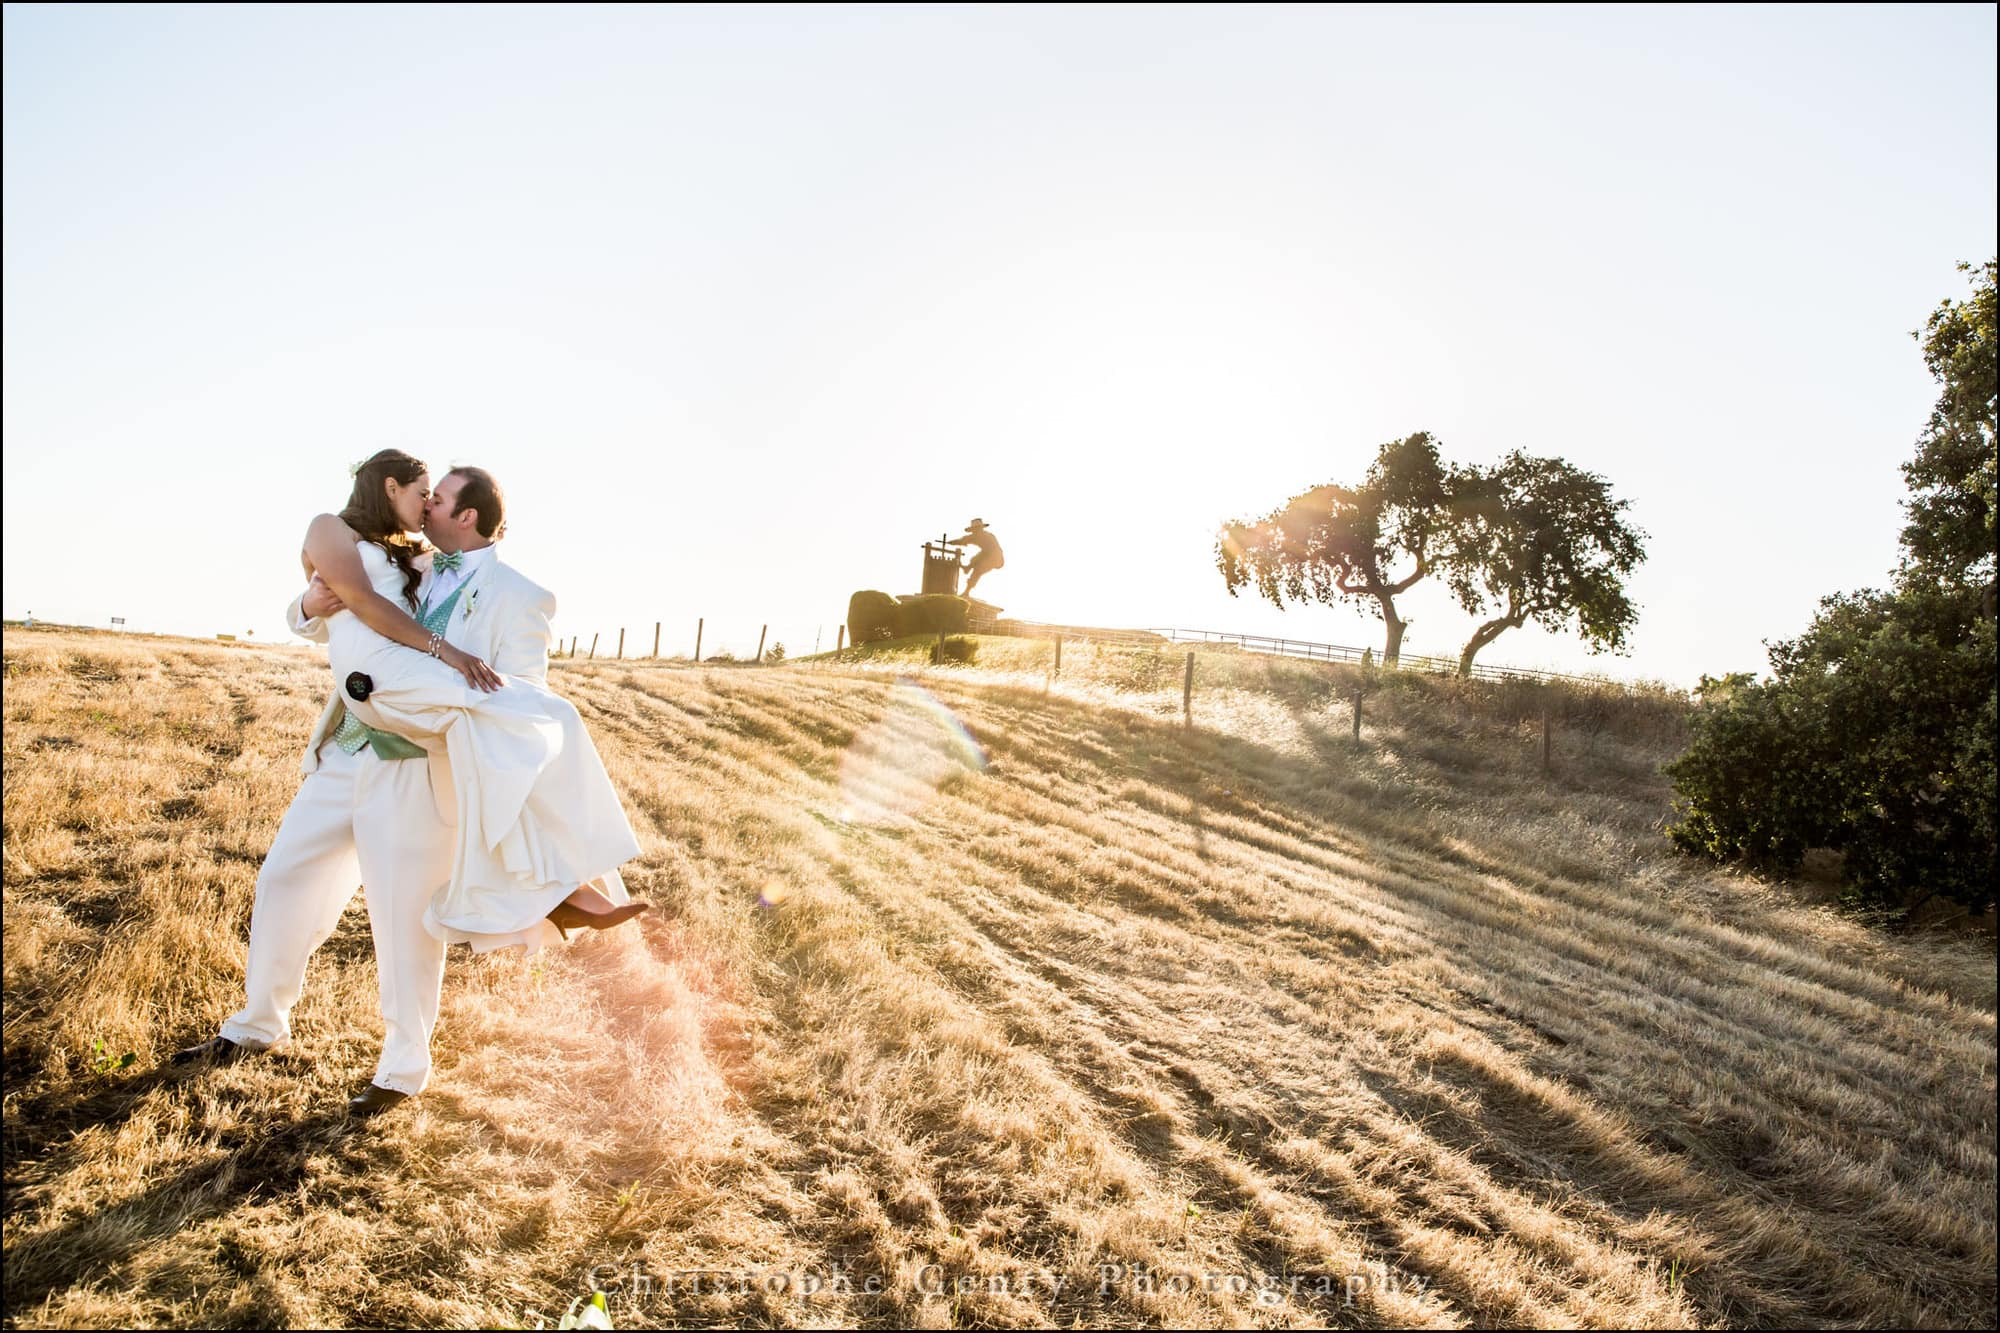 Wedding Photography at The Meritage Inn & Spa, Napa CA - Jennifer & Pribin